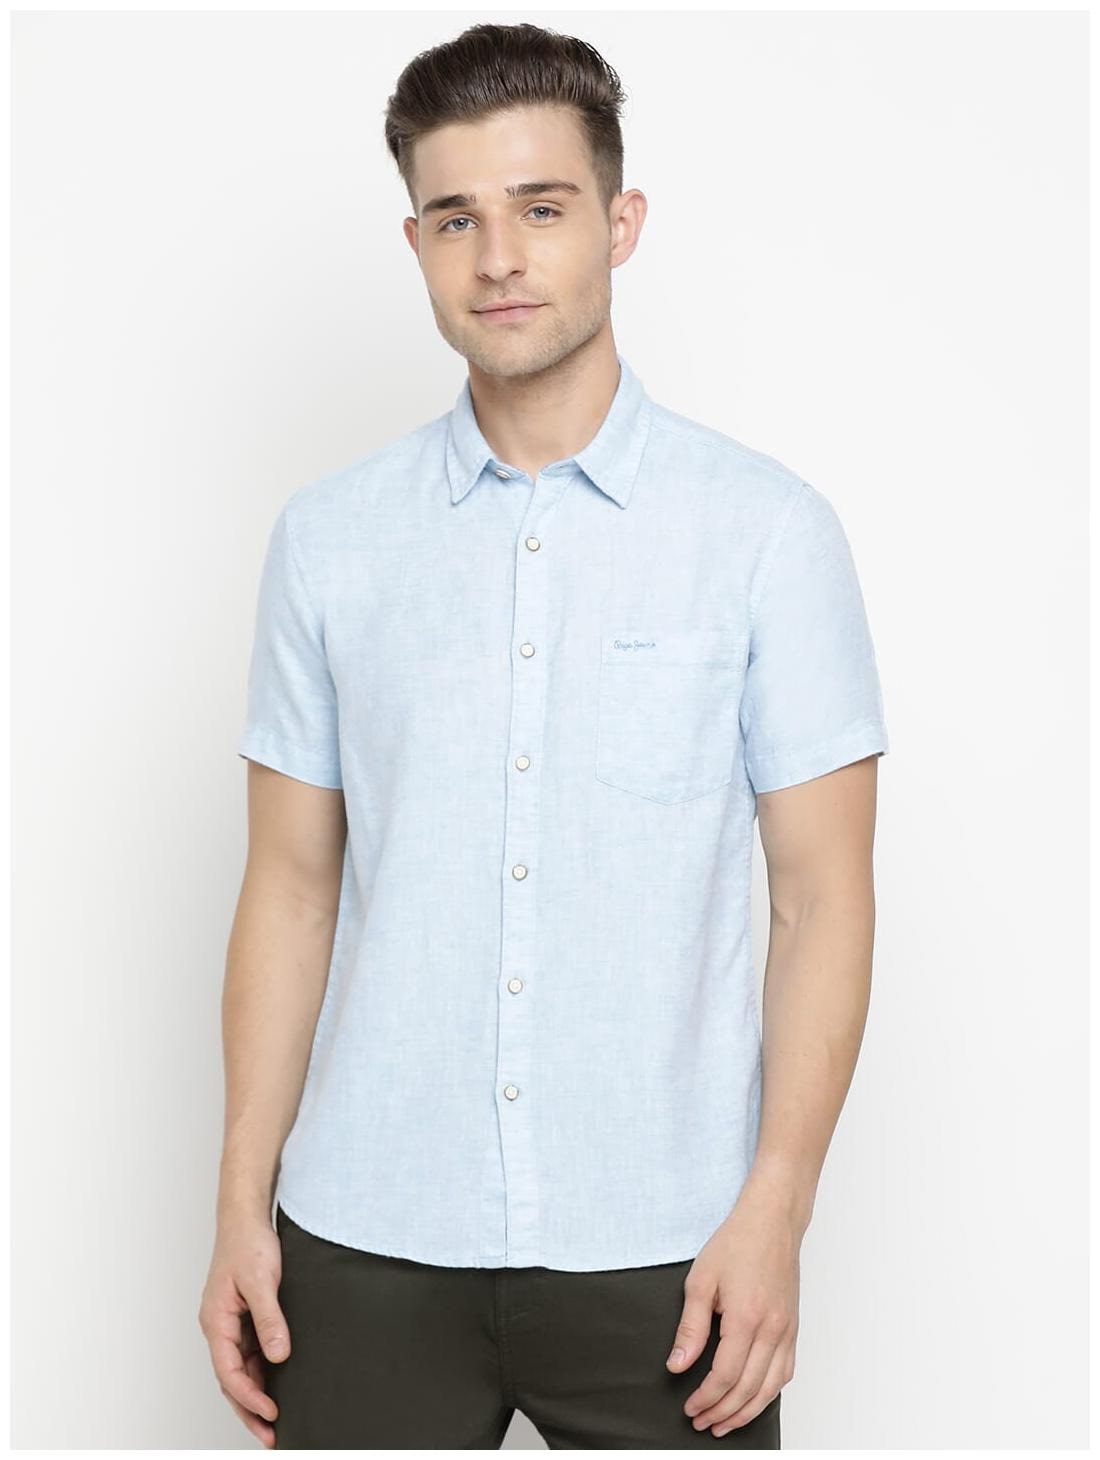 https://assetscdn1.paytm.com/images/catalog/product/A/AP/APPPEPE-JEANS-MAPAC8716385DEFFE8E/1592211618664_0..jpg